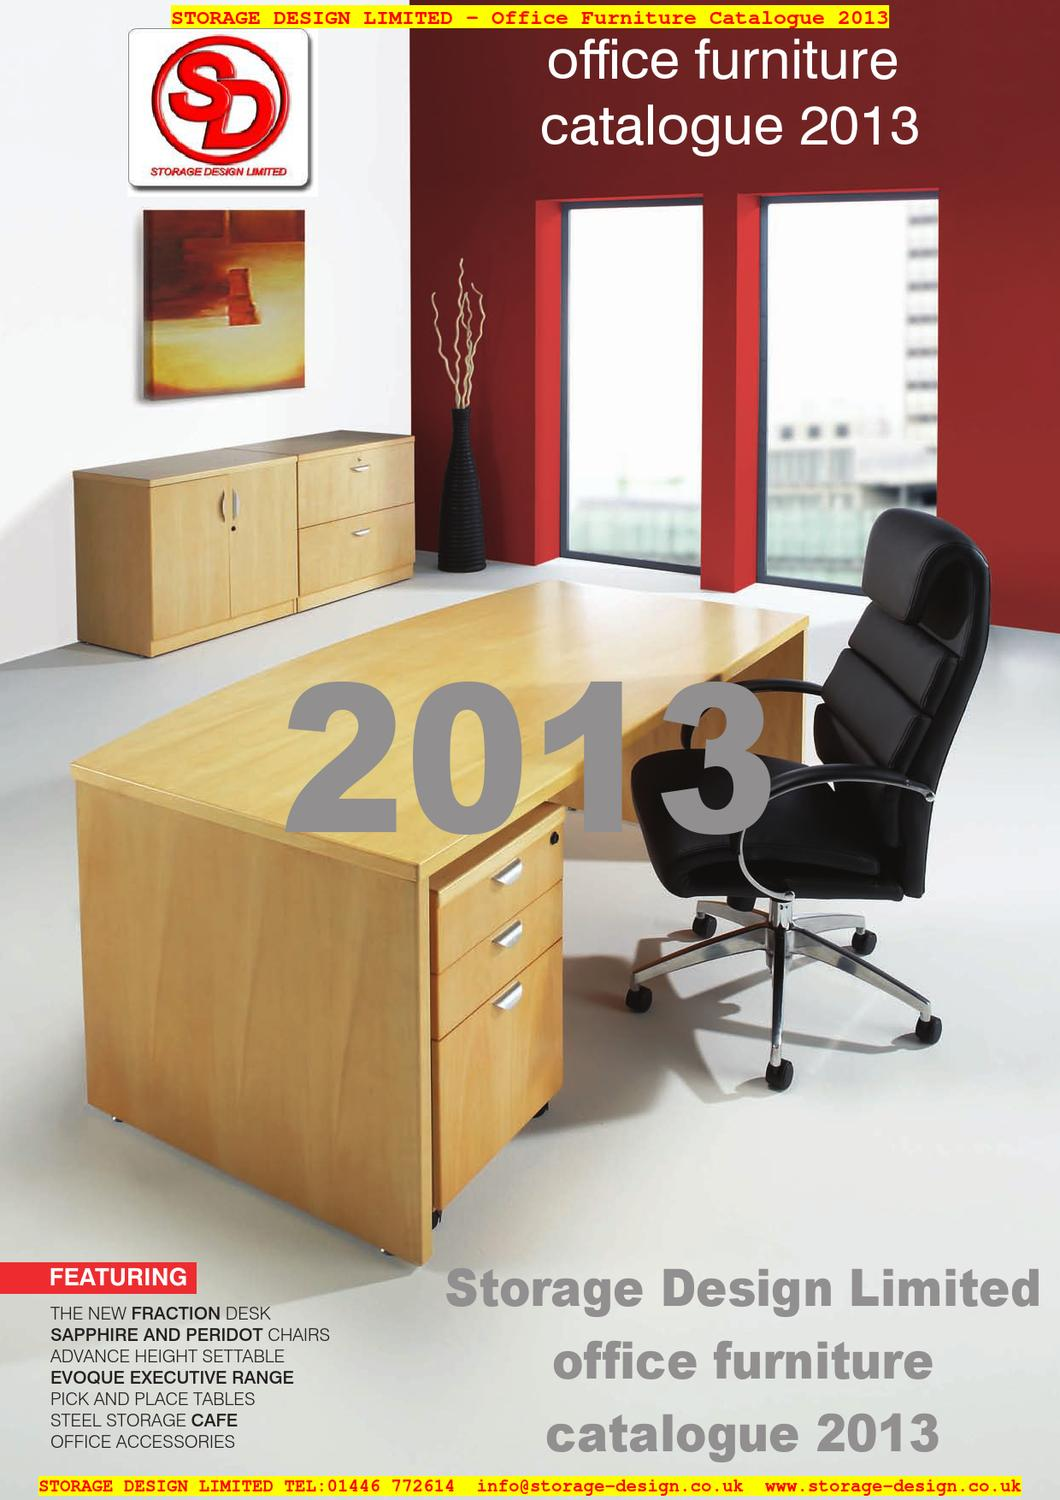 office furniture catalogue 2013 from storage design limited by storage